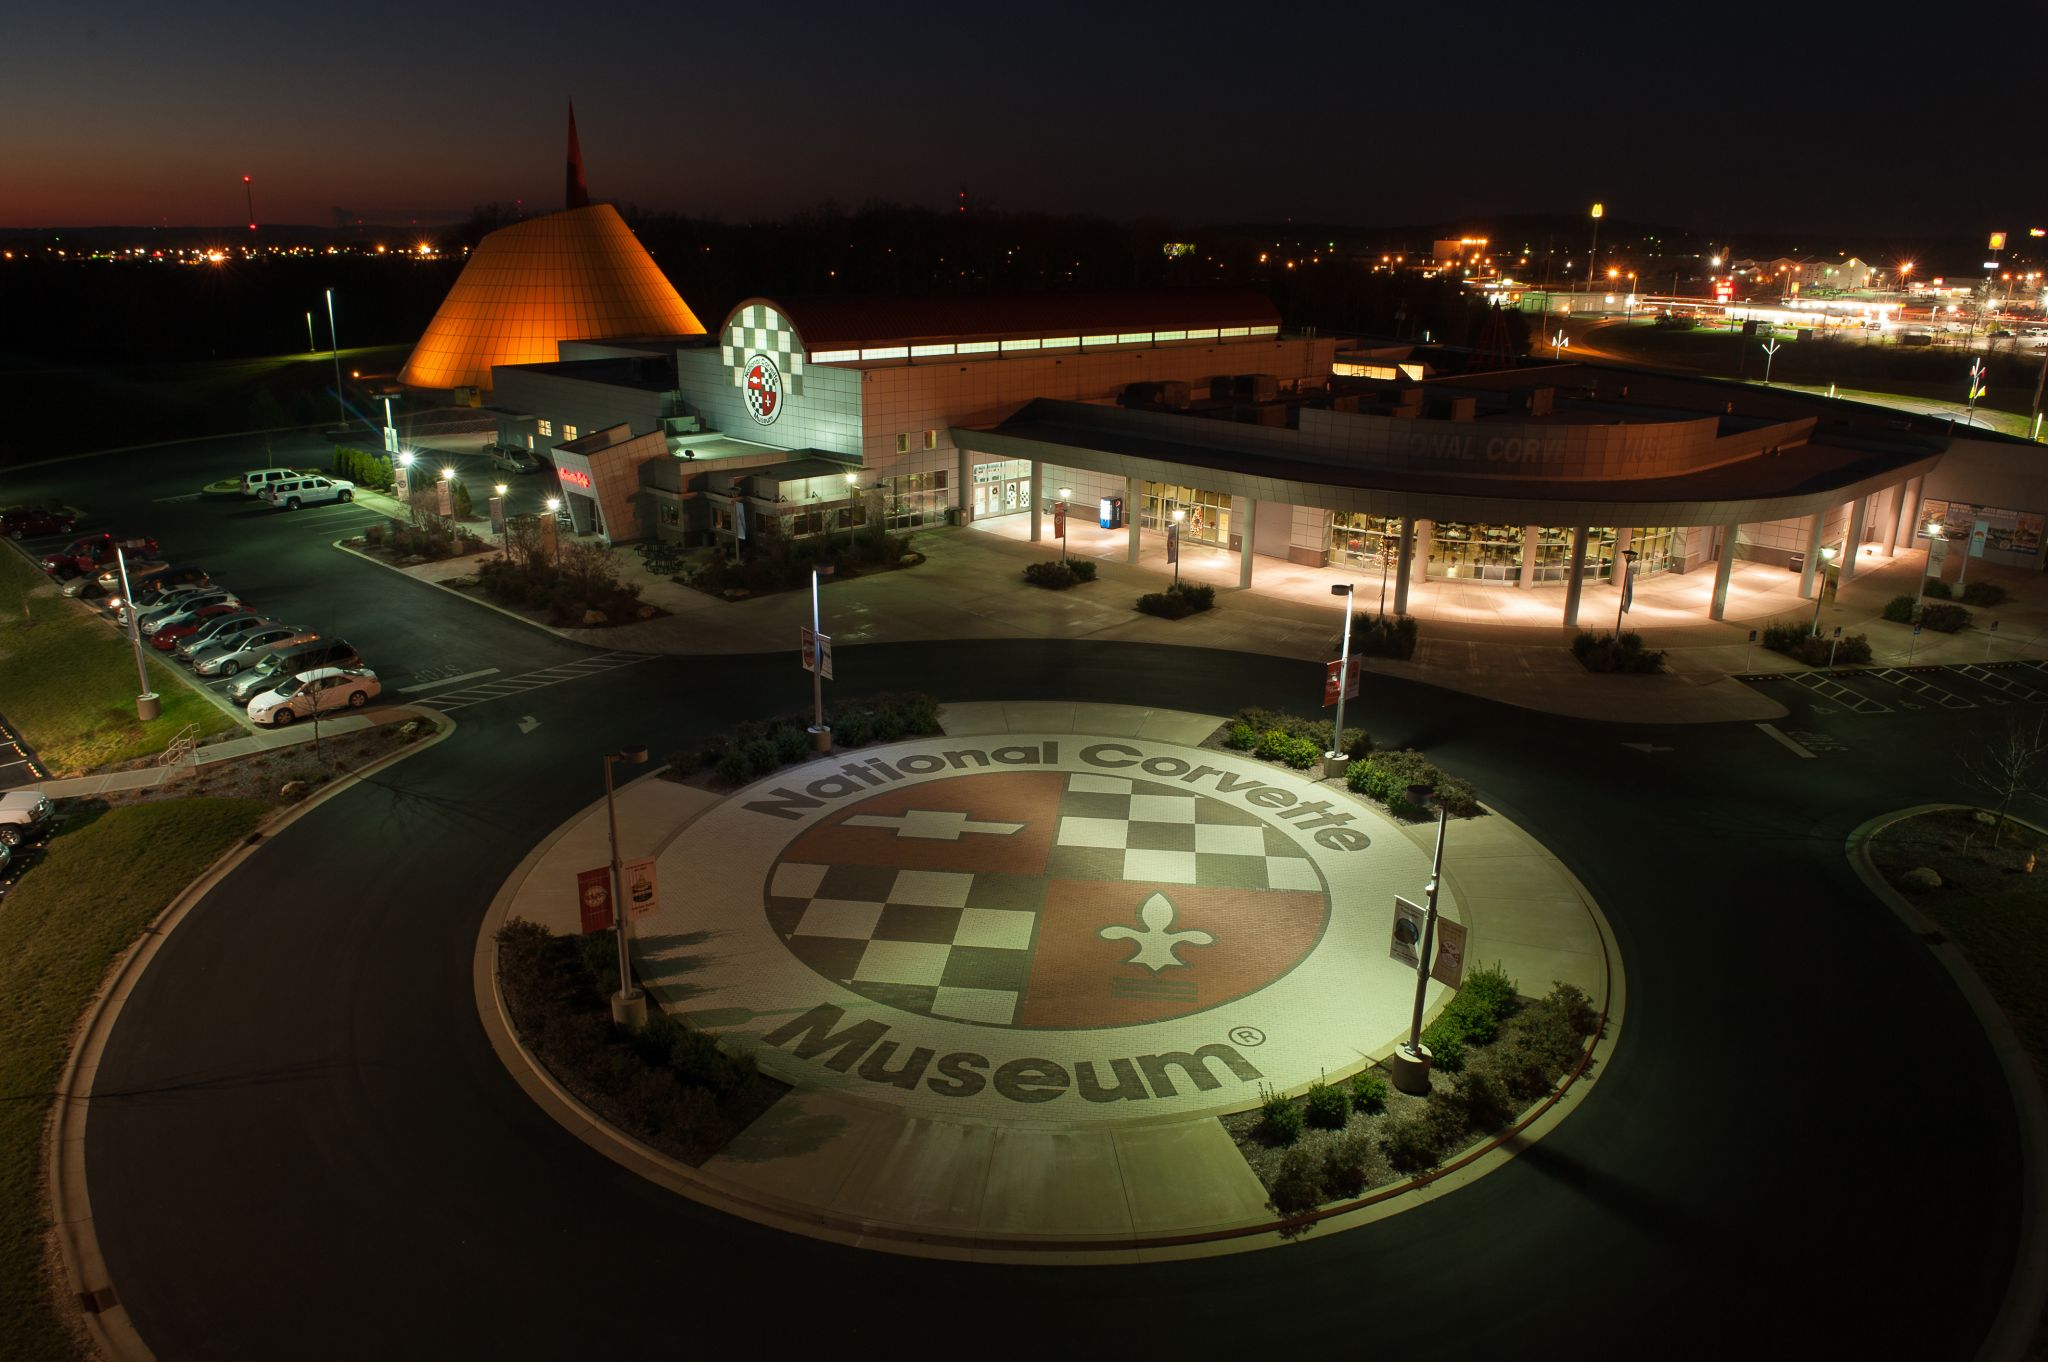 Before the light-emitting diode (LED) upgrade, metal halide fixtures consumed a lot of energy and required ongoing maintenance at the National Corvette Museum in Bowling Green, Kentucky.